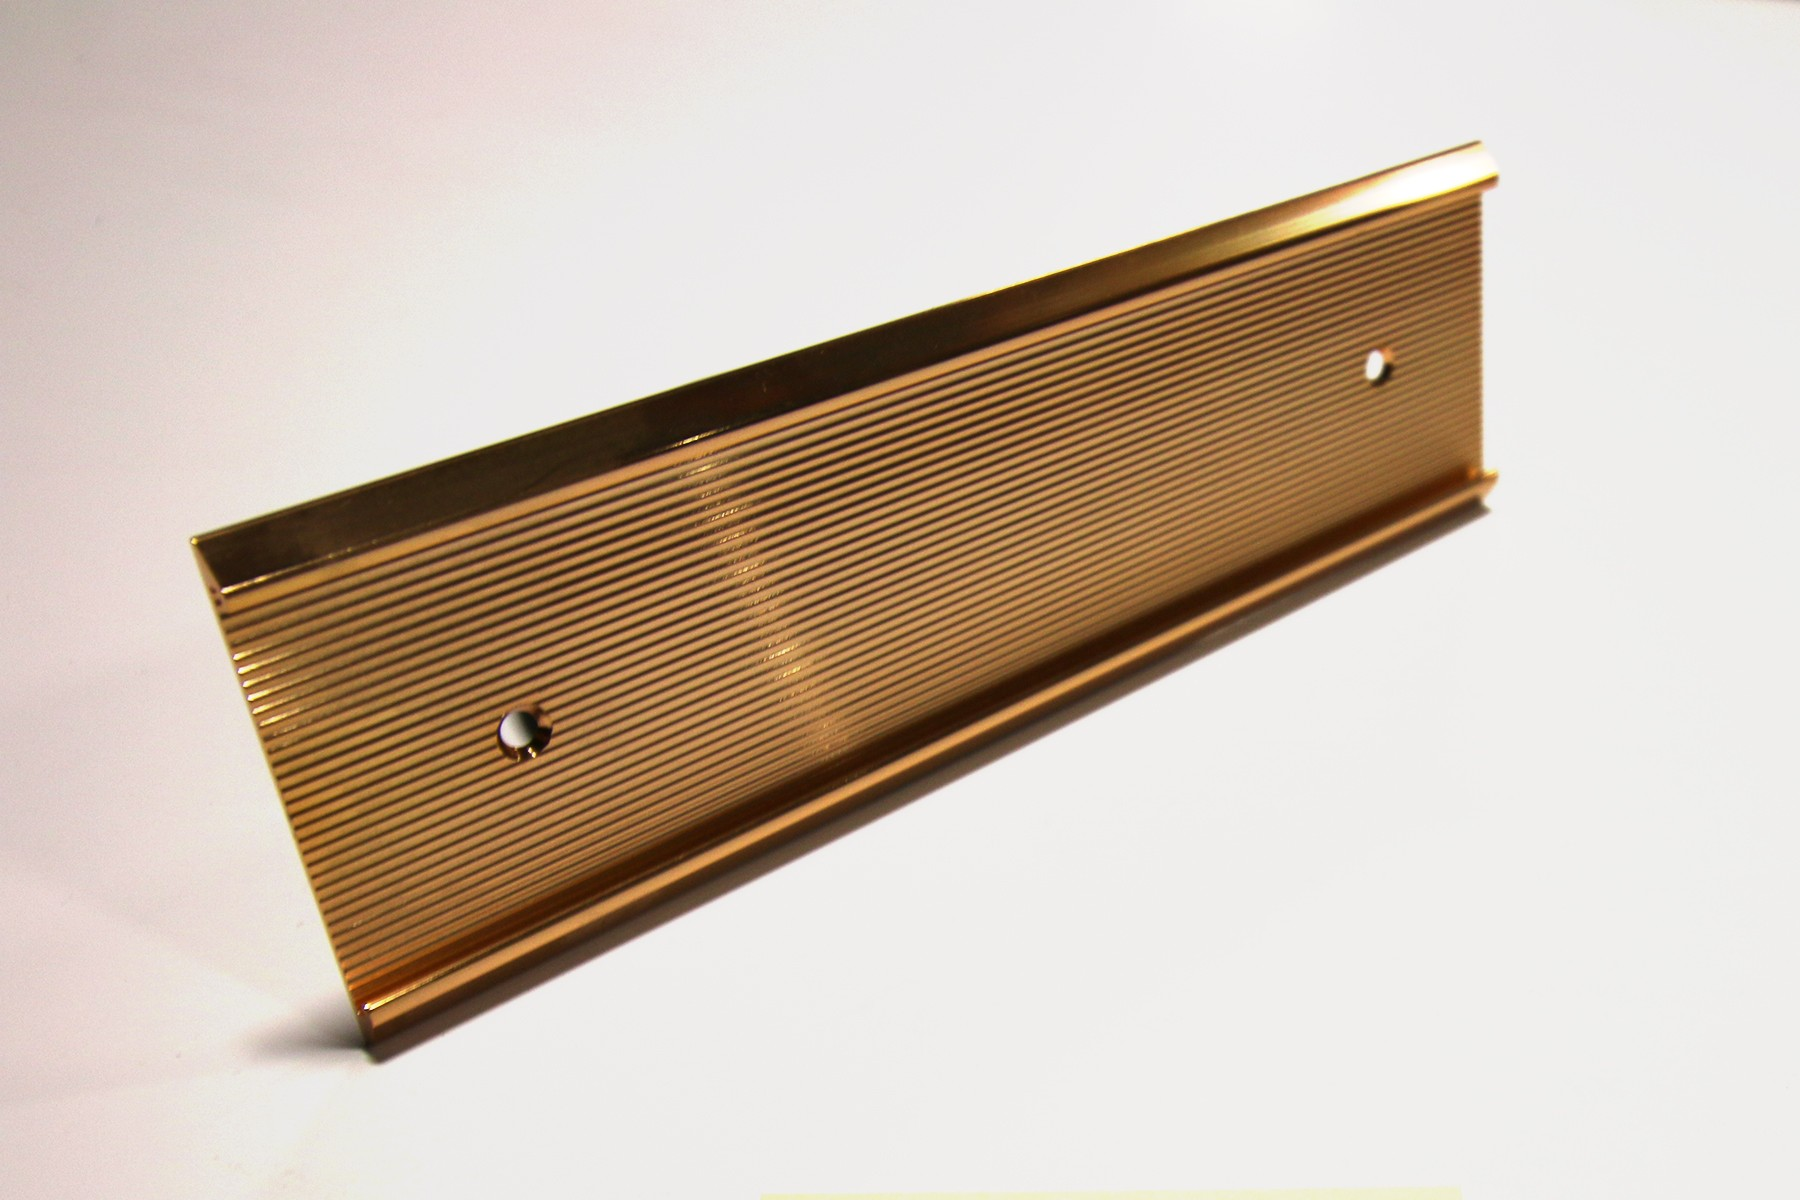 2 x 10 Ribbed Wall Holder, Gold